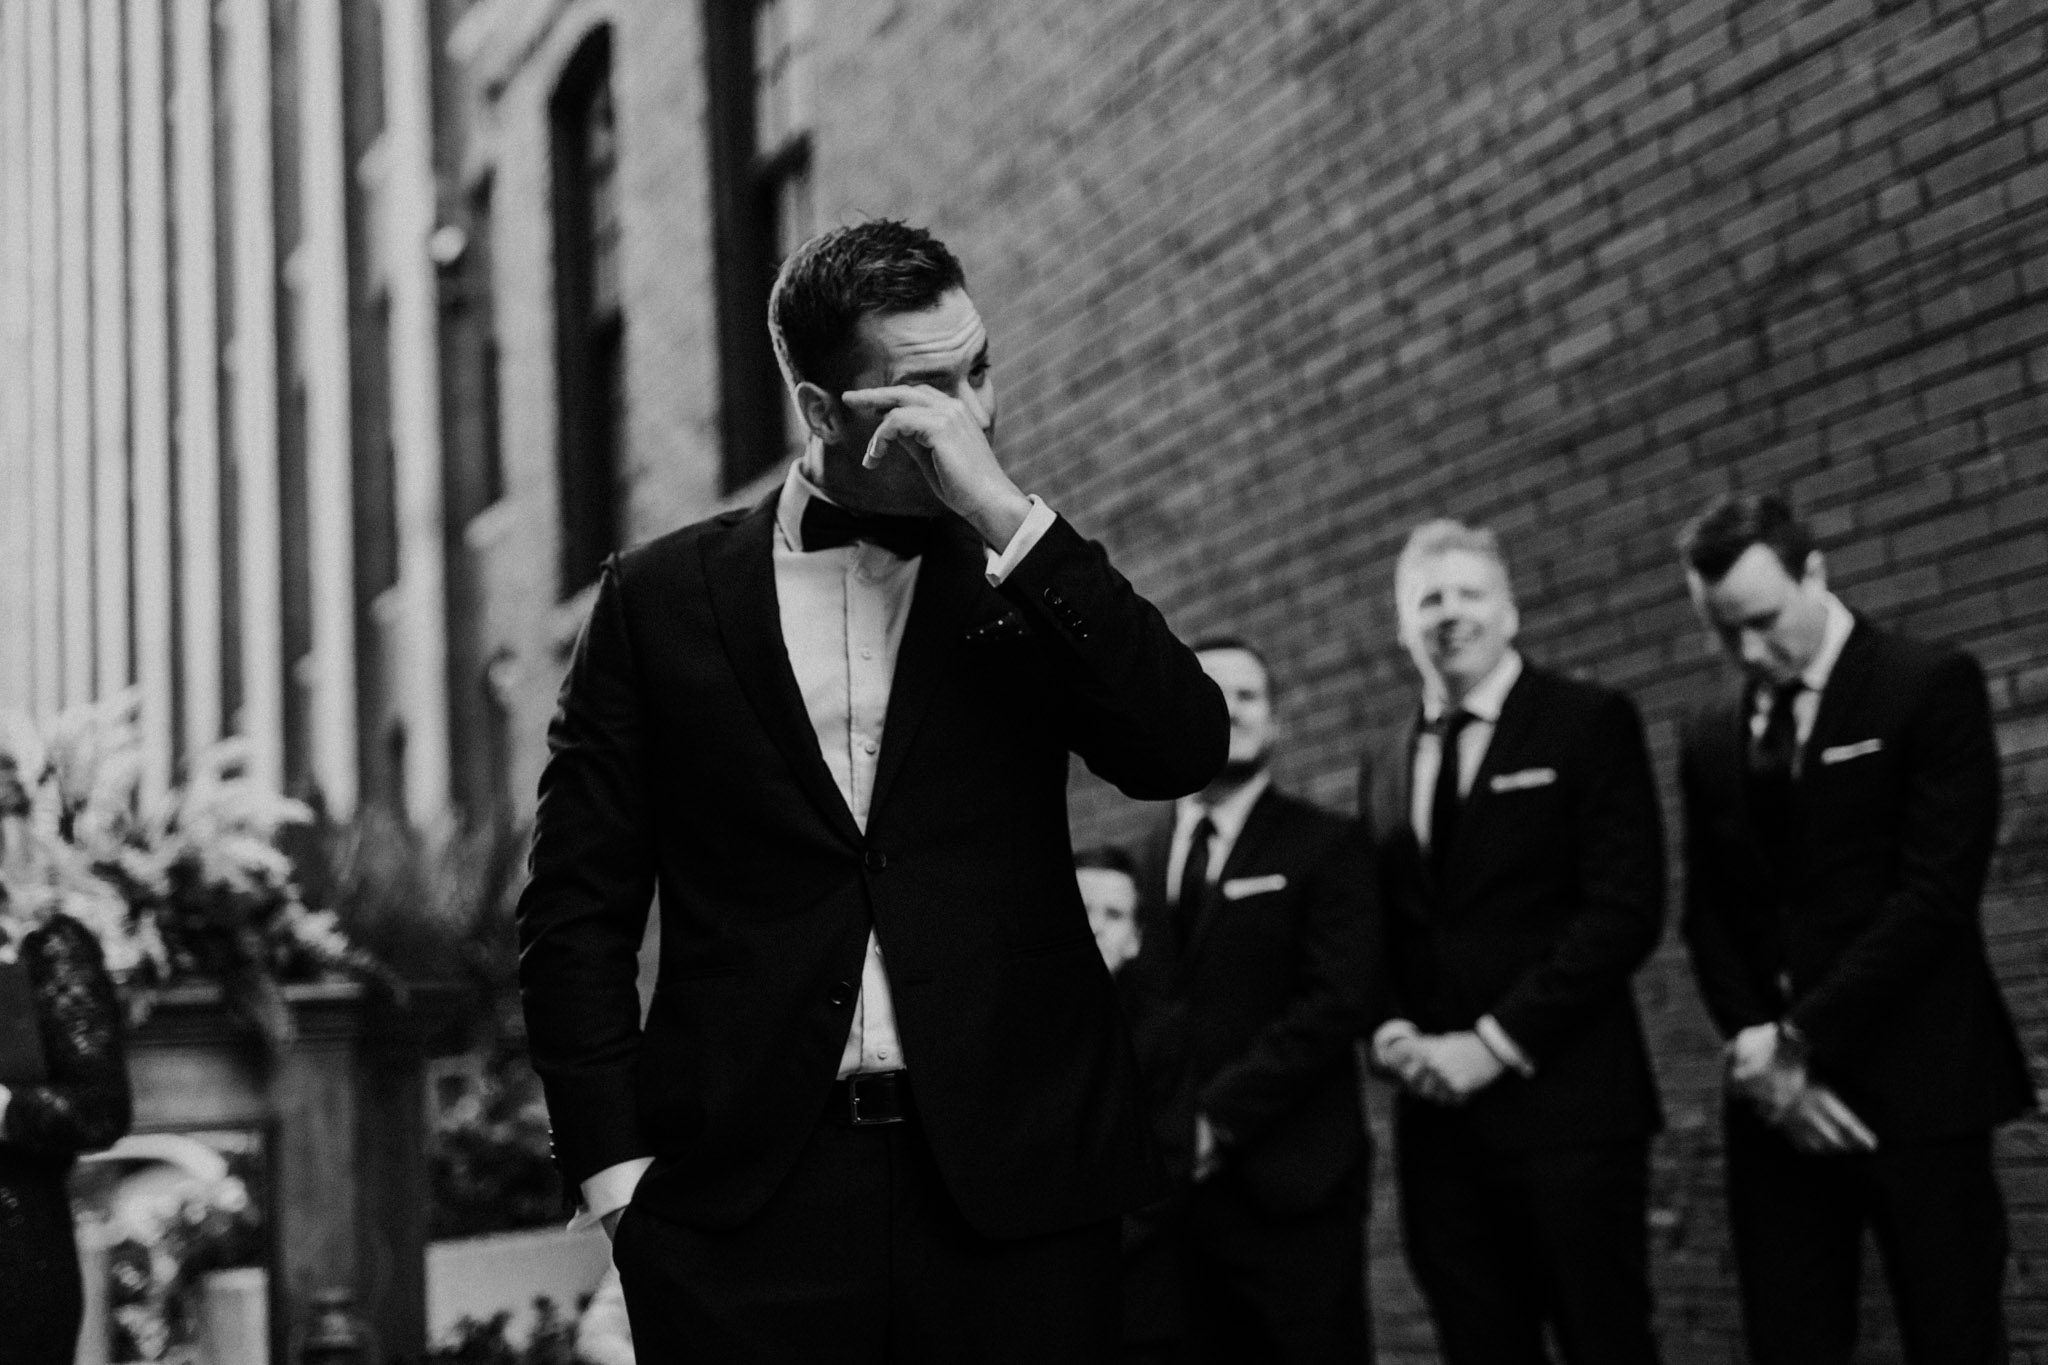 Liberty Village Wedding - groom crying after seeing bride